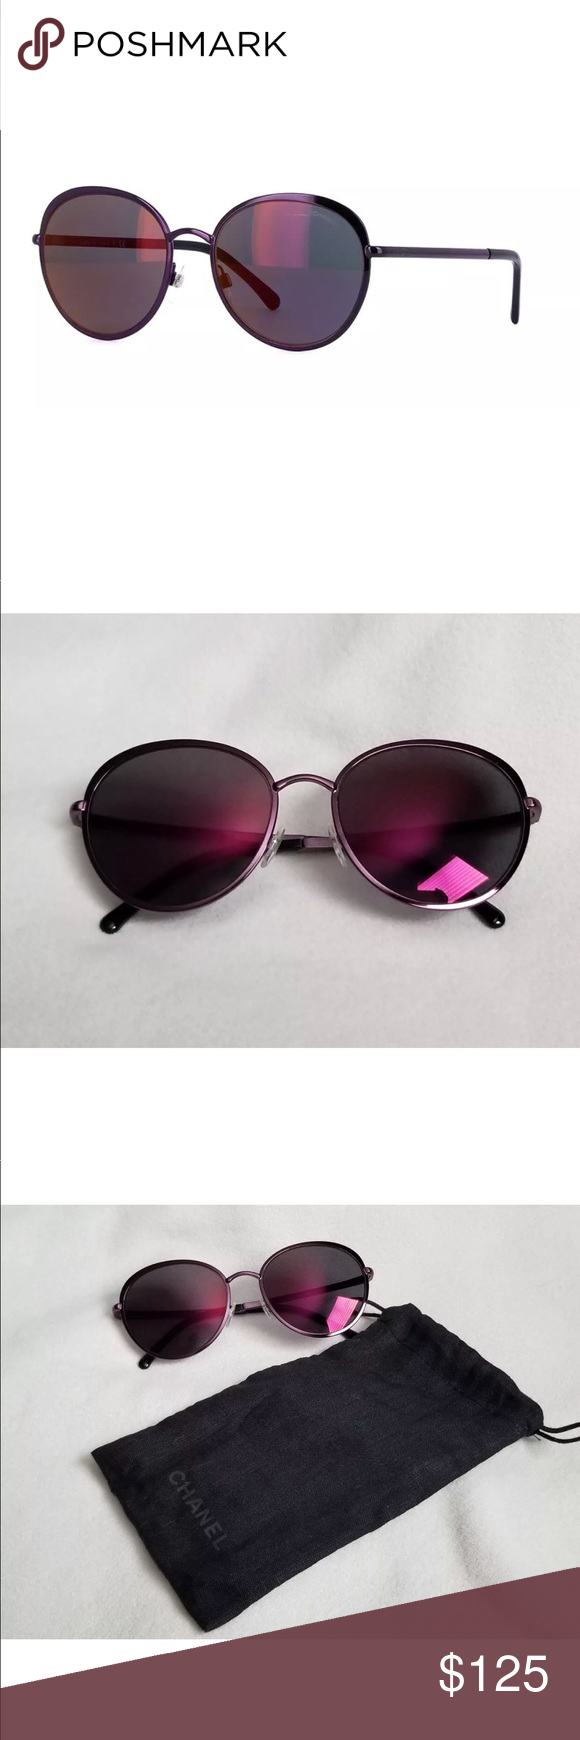 1374fd83828c Gorgeous Authentic Chanel Mirrored Sunglasses Gorgeous Authentic Chanel  Mirrored Sunglasses in very good condition. Minor invisible scratches.